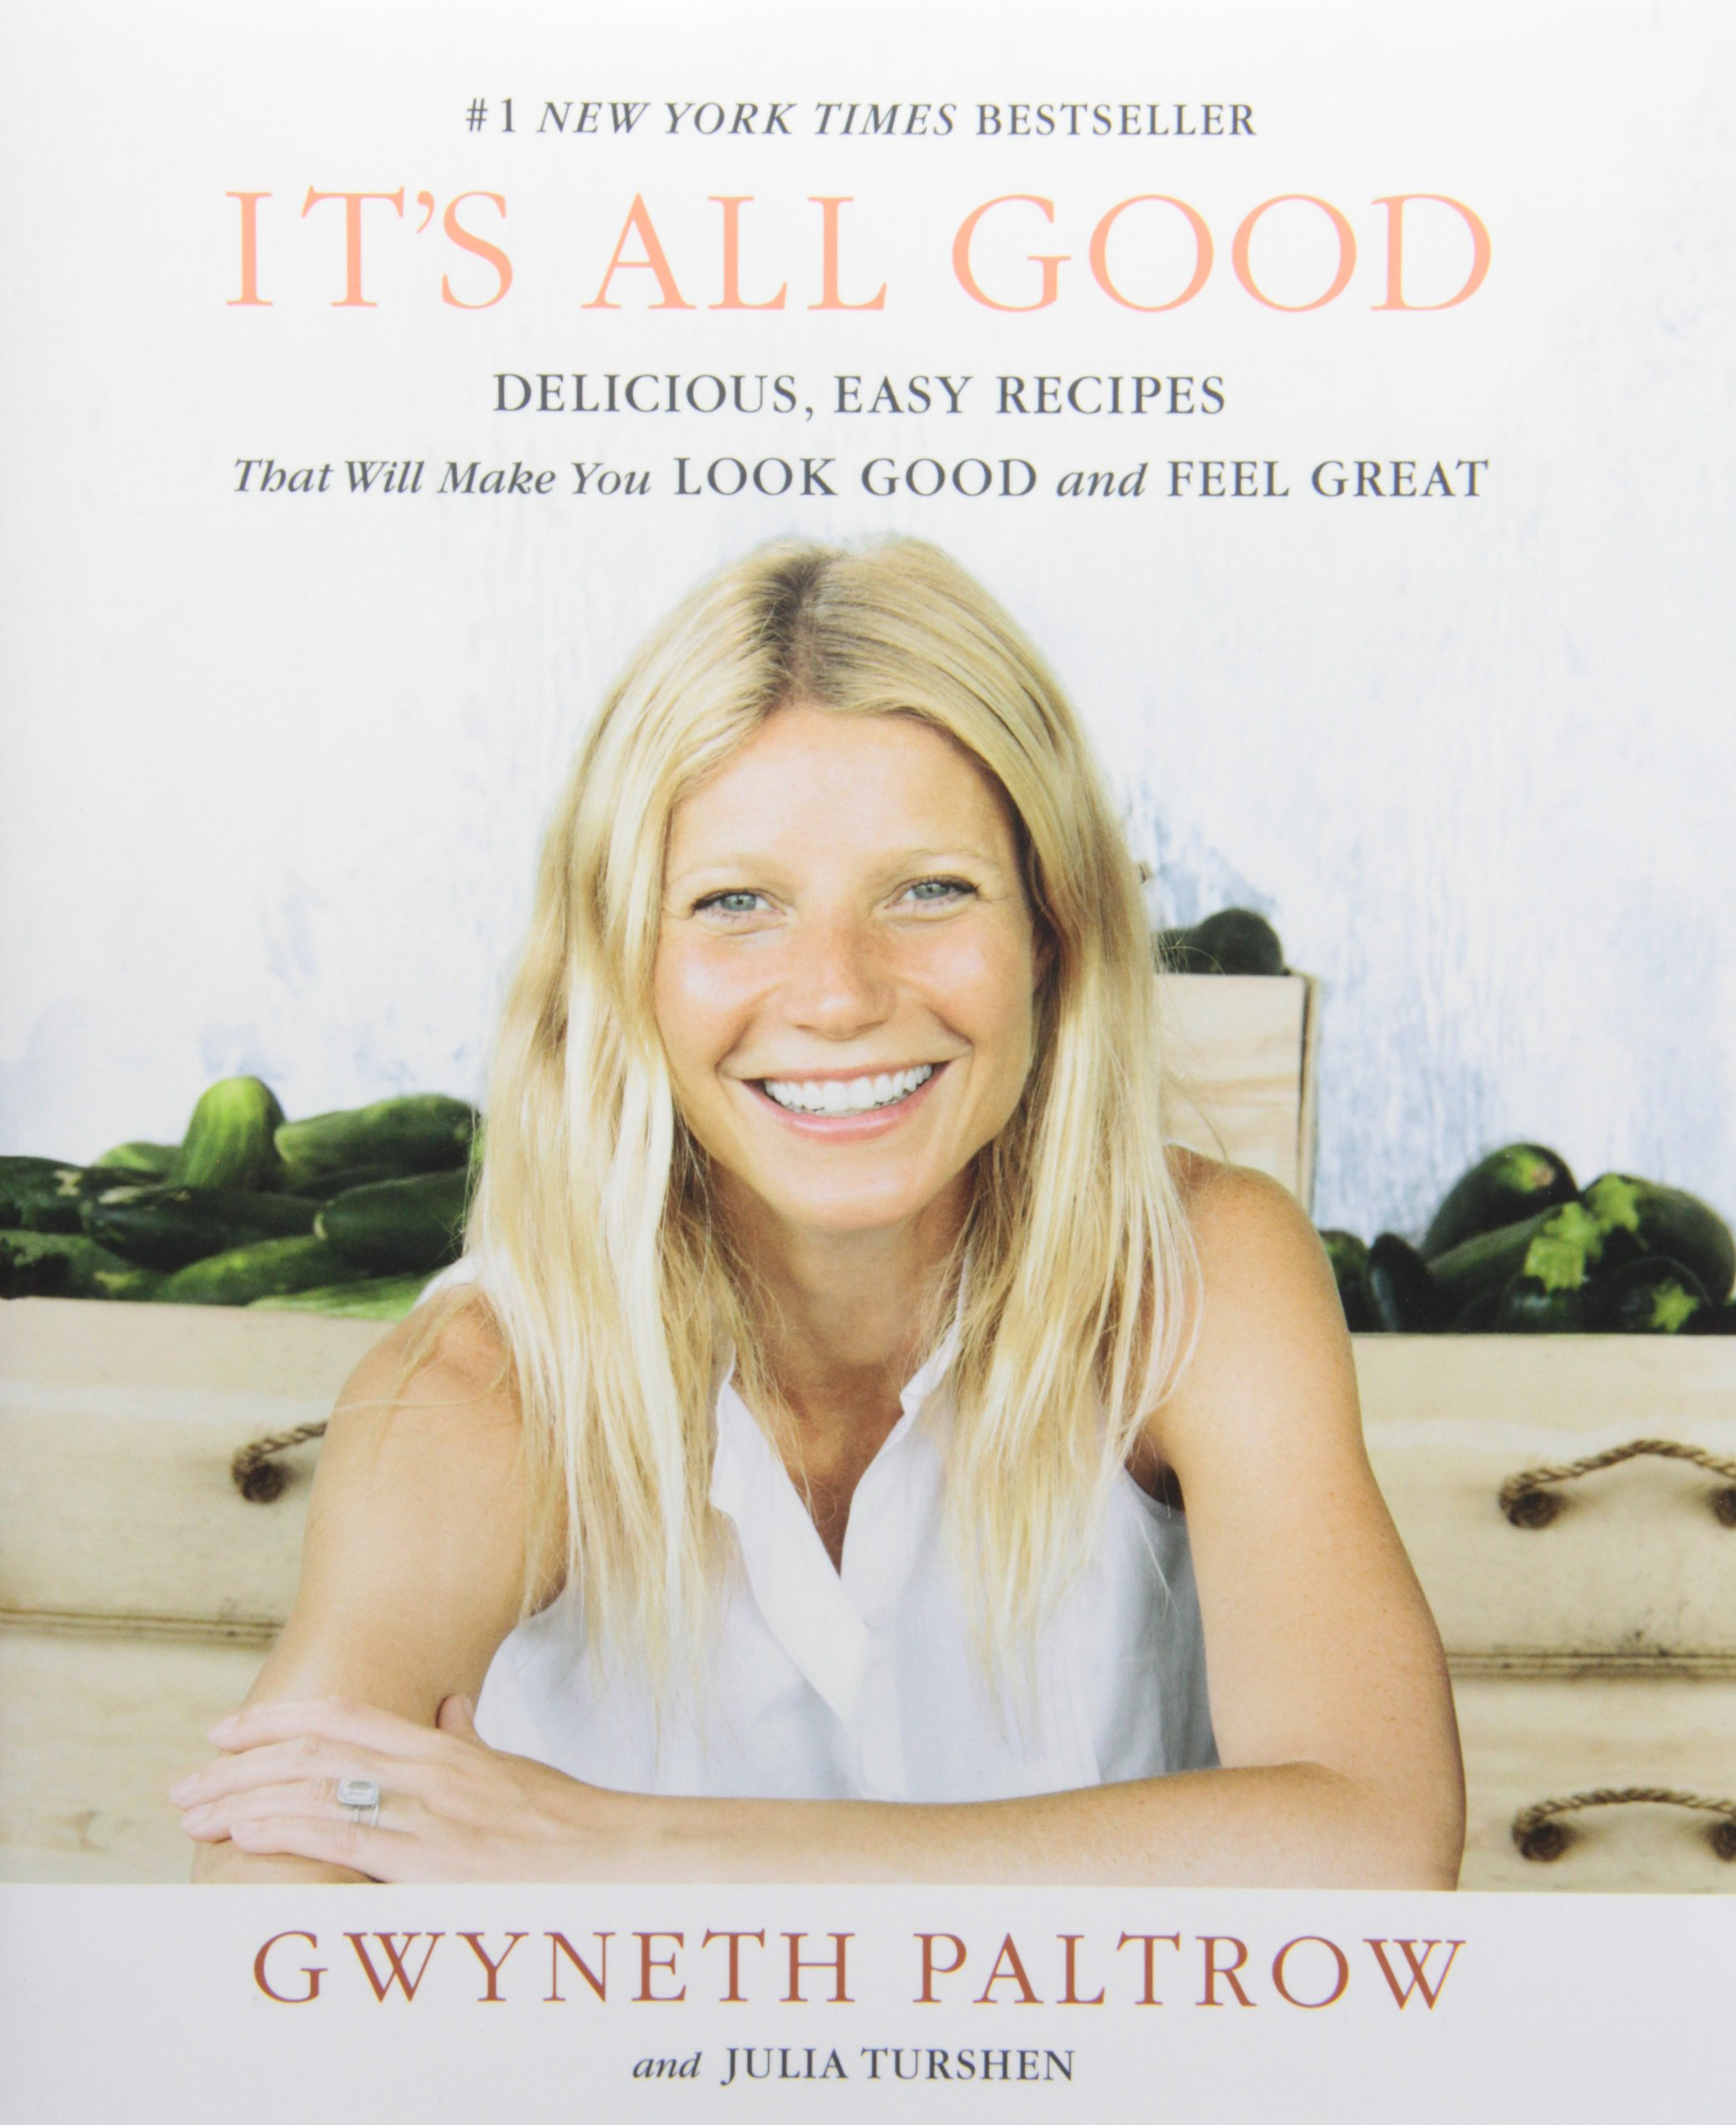 gwyneth paltrow 1995gwyneth paltrow instagram, gwyneth paltrow height, gwyneth paltrow 2016, gwyneth paltrow 2017, gwyneth paltrow movies, gwyneth paltrow vk, gwyneth paltrow and brad pitt, gwyneth paltrow daughter, gwyneth paltrow glee, gwyneth paltrow films, gwyneth paltrow 90s, gwyneth paltrow kinopoisk, gwyneth paltrow gif, gwyneth paltrow oscar, gwyneth paltrow street style, gwyneth paltrow 1995, gwyneth paltrow interview, gwyneth paltrow blog, gwyneth paltrow photo, gwyneth paltrow and viggo mortensen